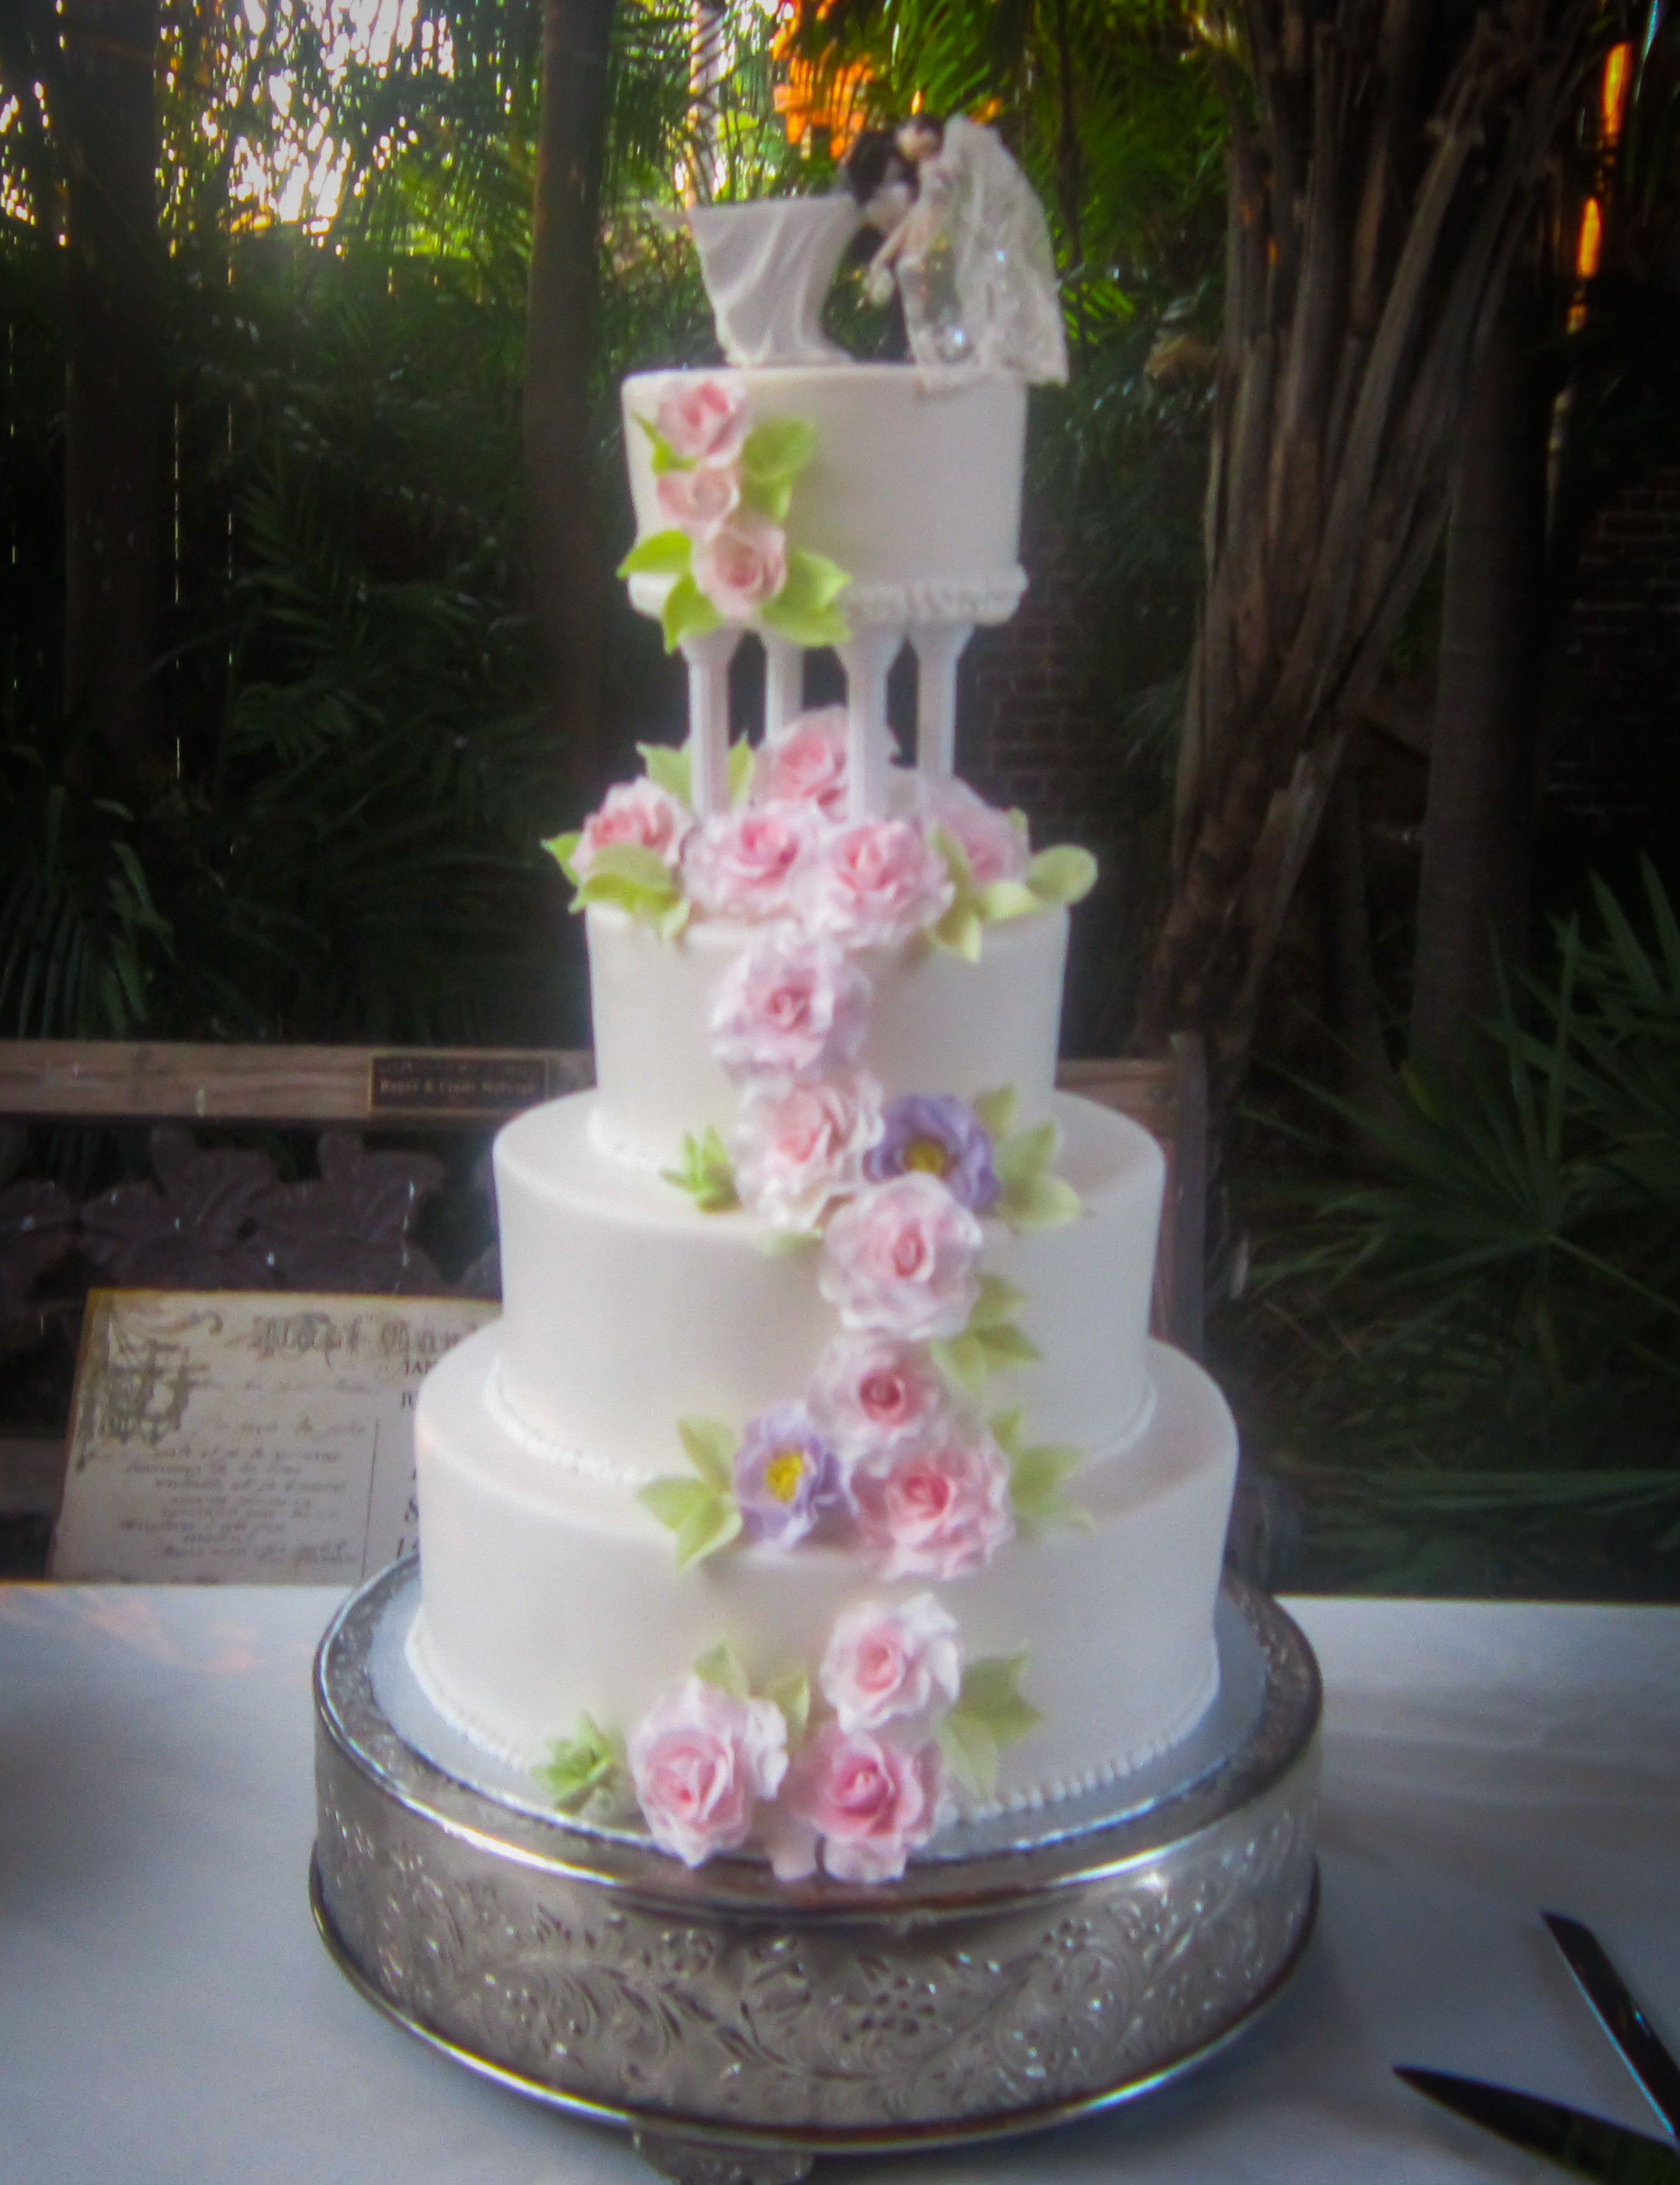 Wedding Cakes Com  Amazing Cakes and Creations – Key West Cakes and Specialty